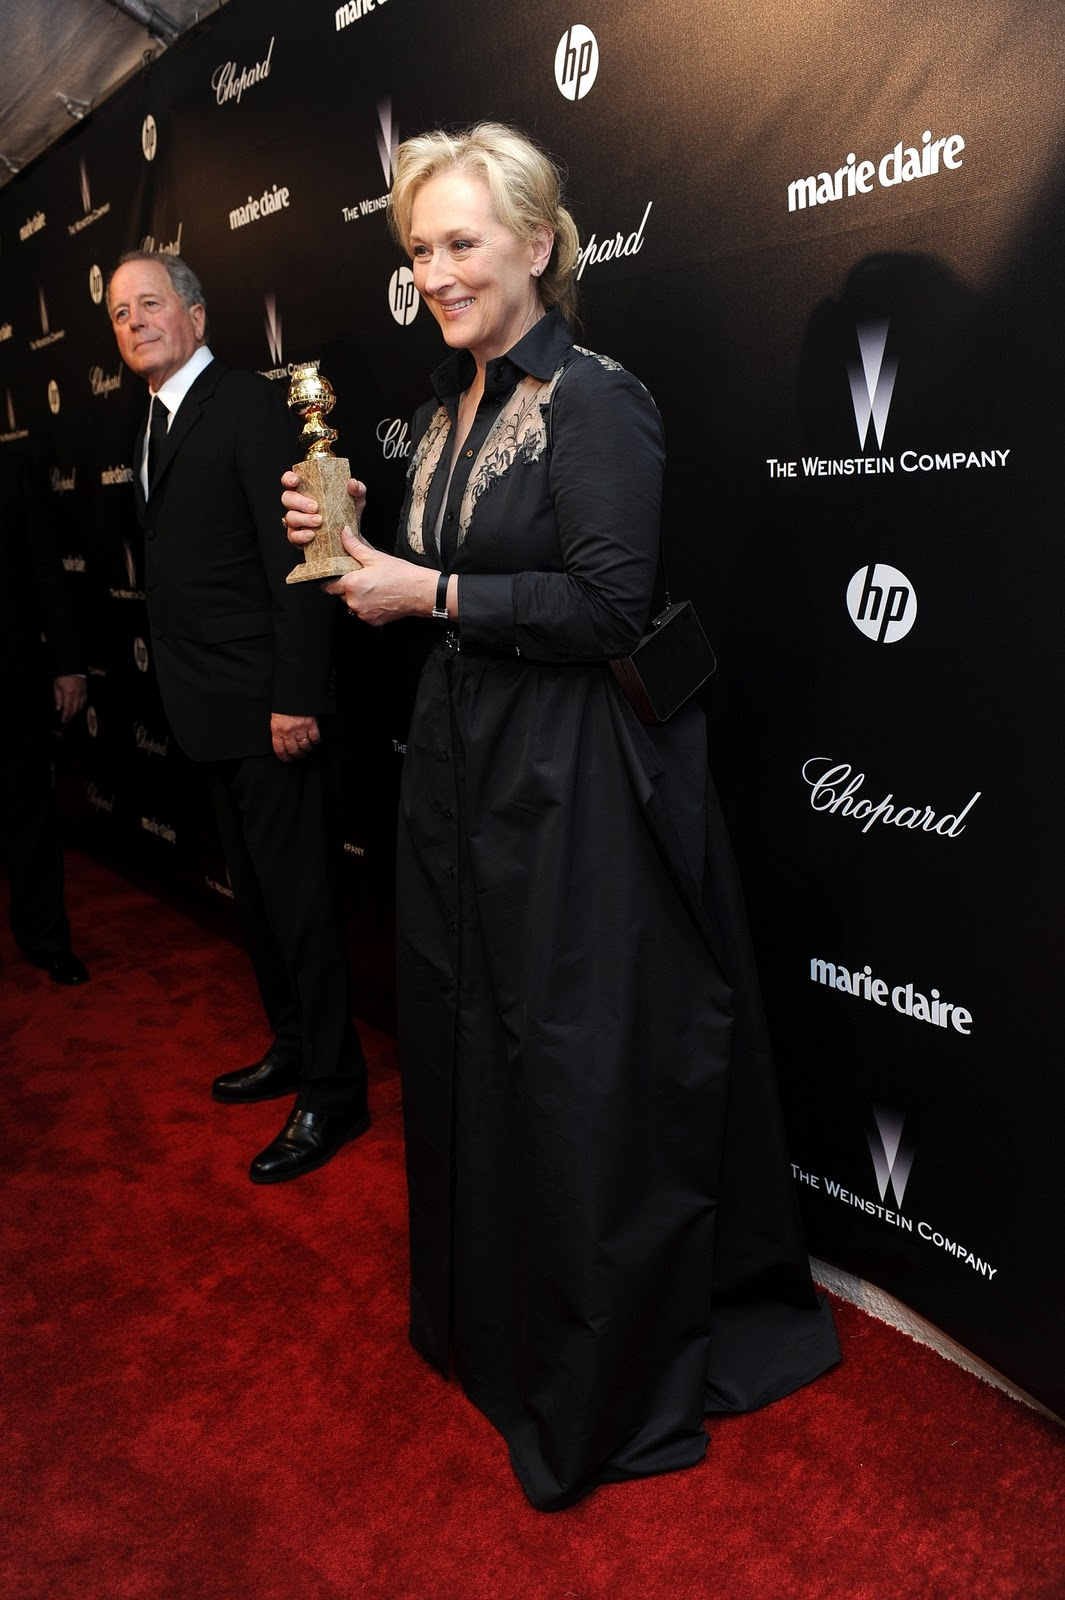 http://3.bp.blogspot.com/-8E5Z78WHhFk/Txw3i-Q-ozI/AAAAAAAAhg8/ukkXo4CMsAA/s1600/Meryl+Streep+at+The+Weinstein+Company%2527s+Celebration+of+the+Golden+Globes+presented+by+Chopard+2.JPG